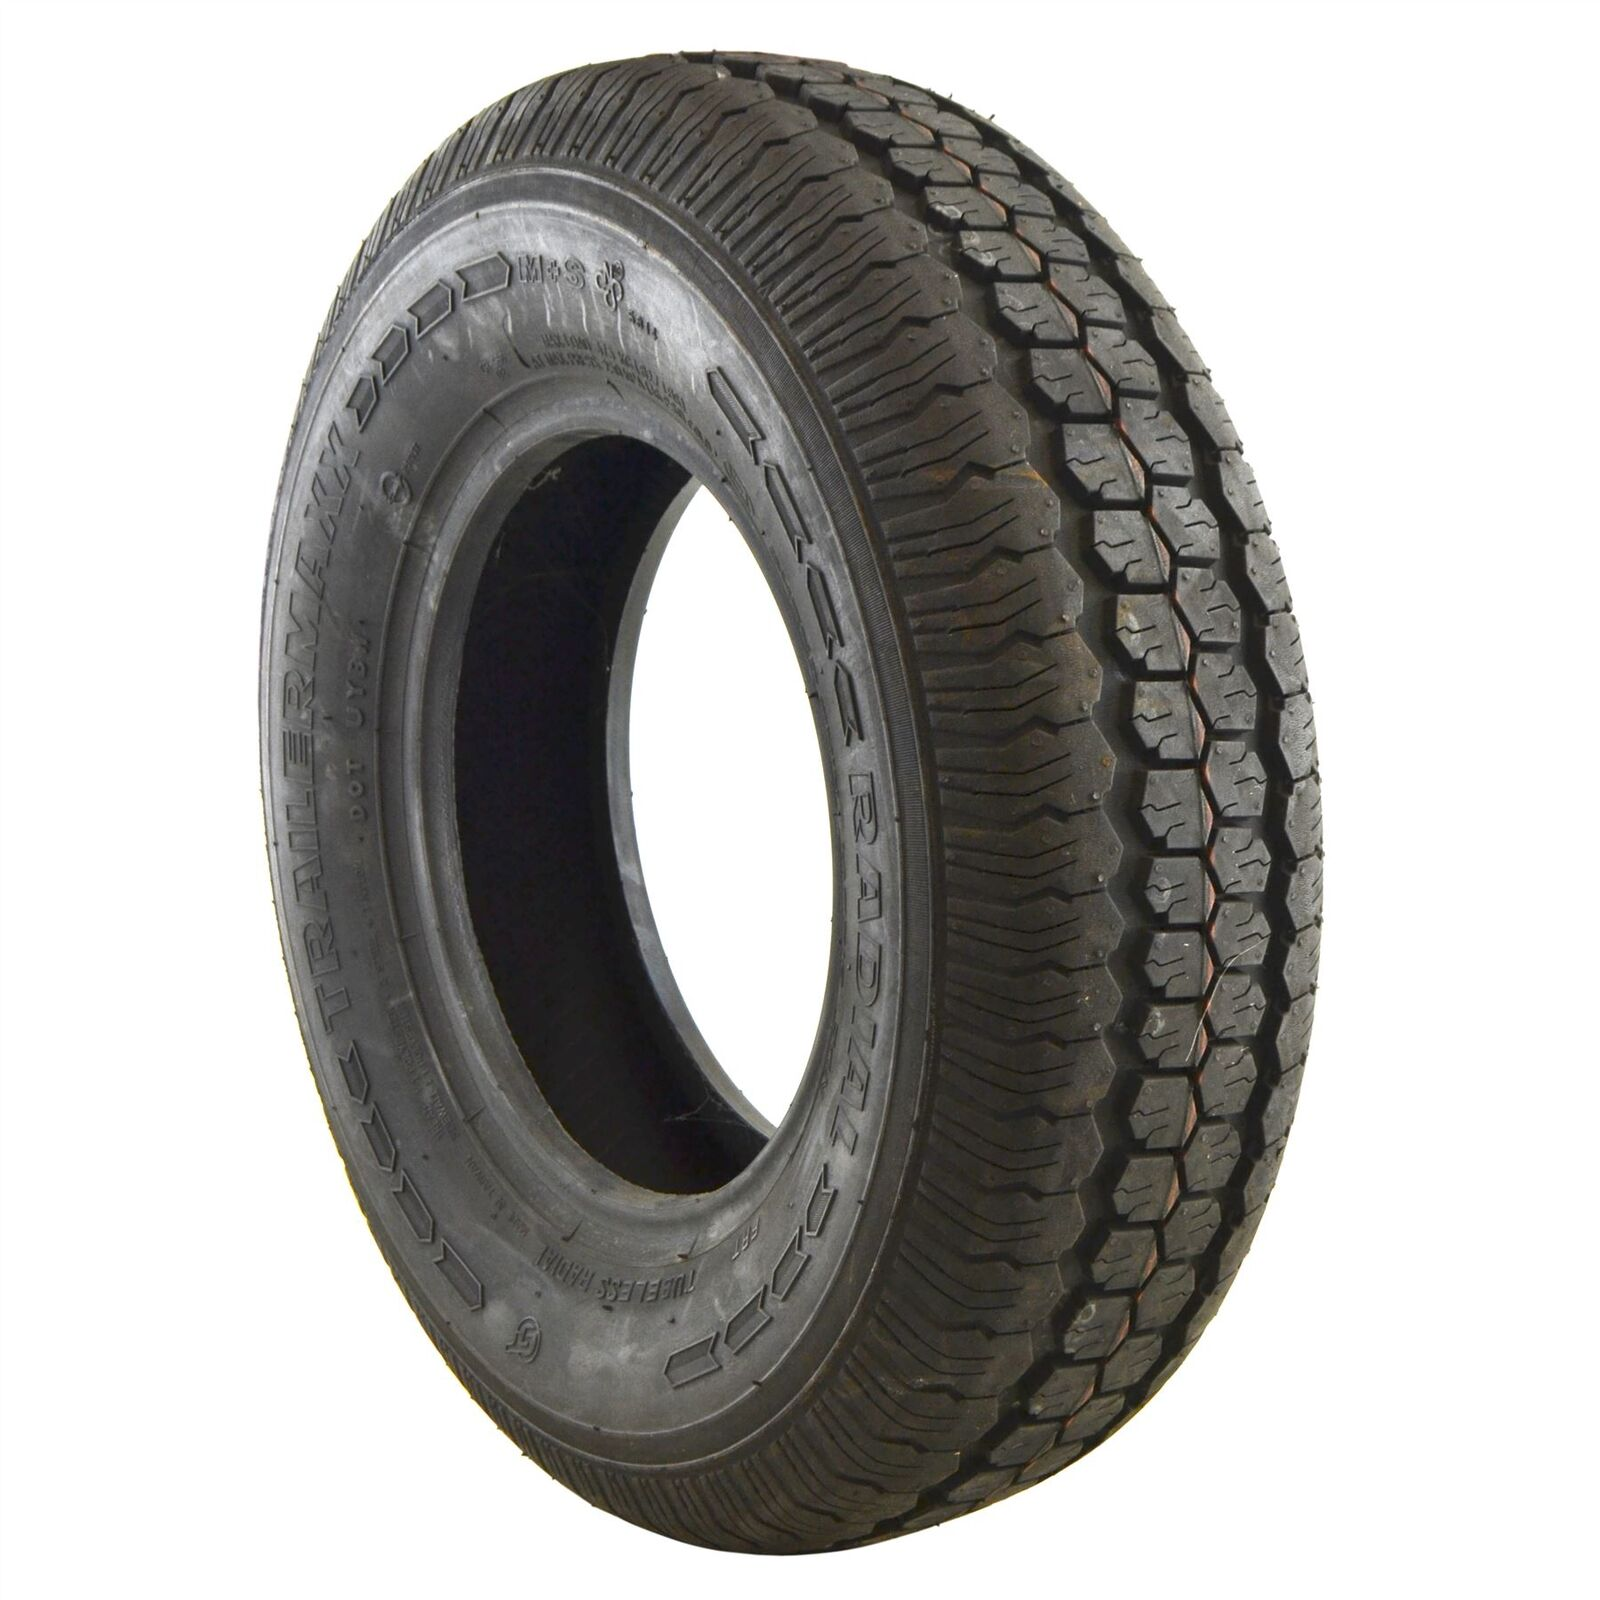 145 R10 Trailer Tyre Tire Only 74N Radial Tubeless 375kg Max 4 PLY TRSP35